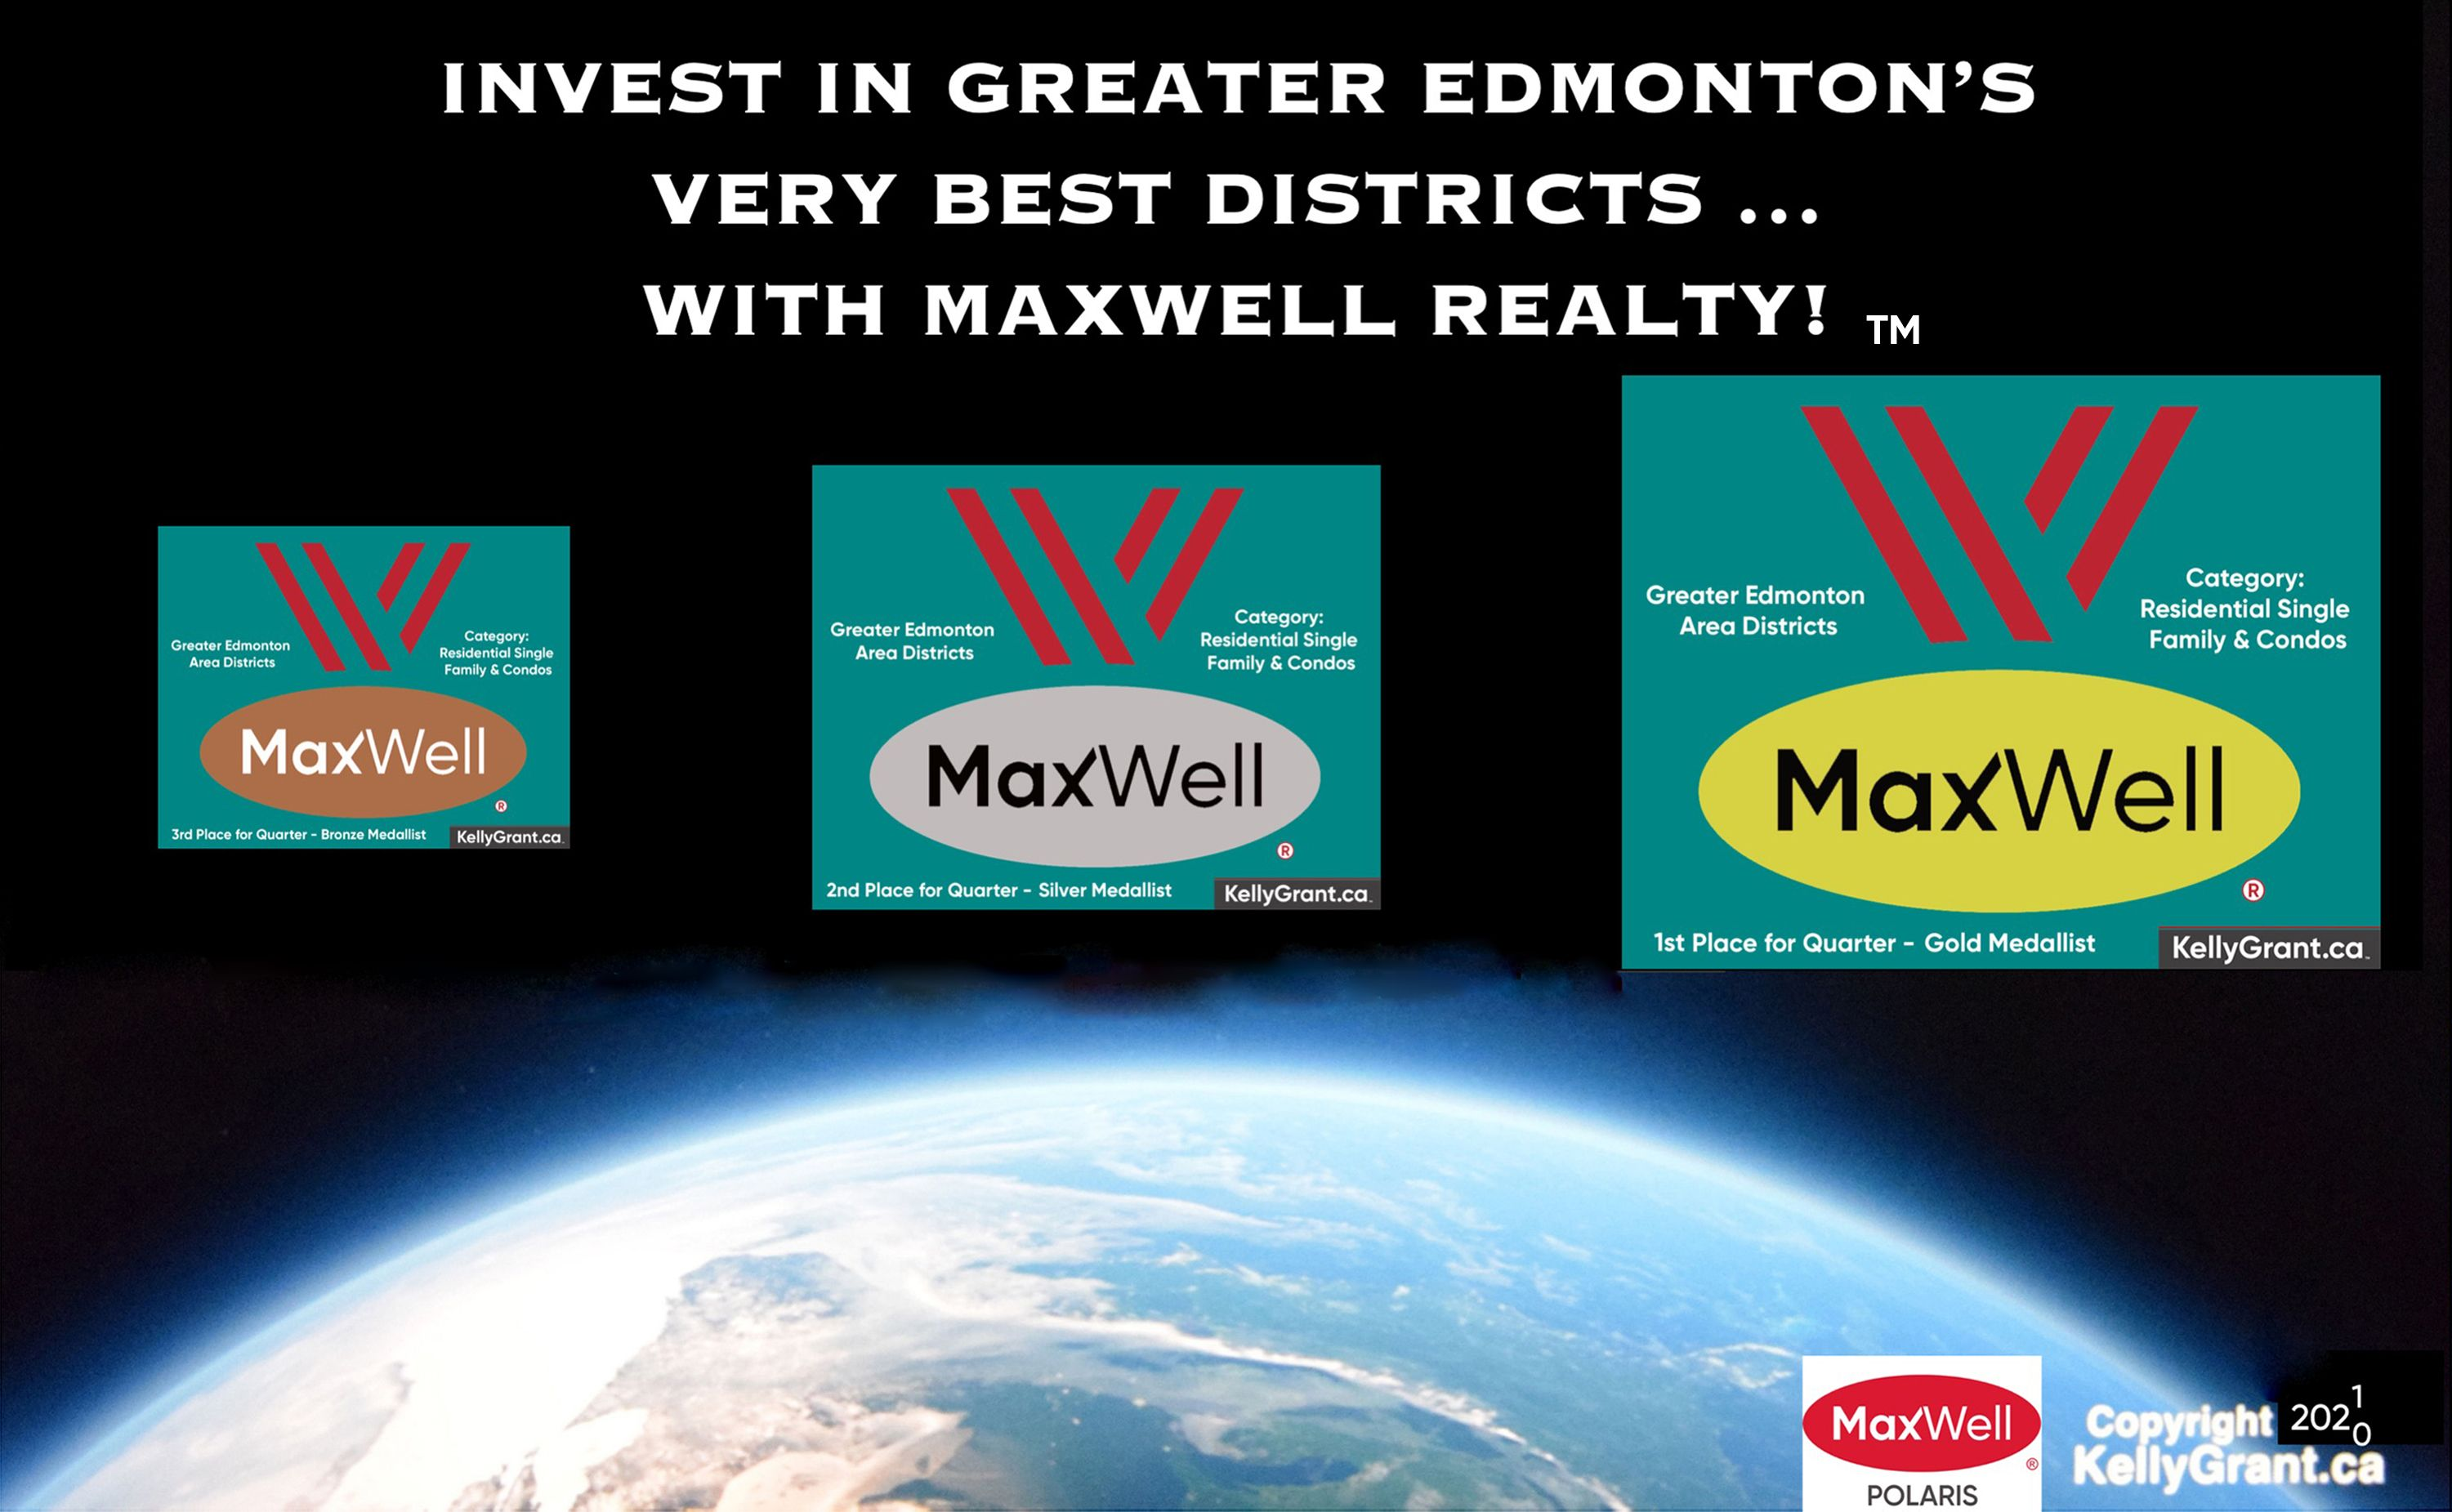 #62-KG MaxWell Invest in Best Districts.jpg